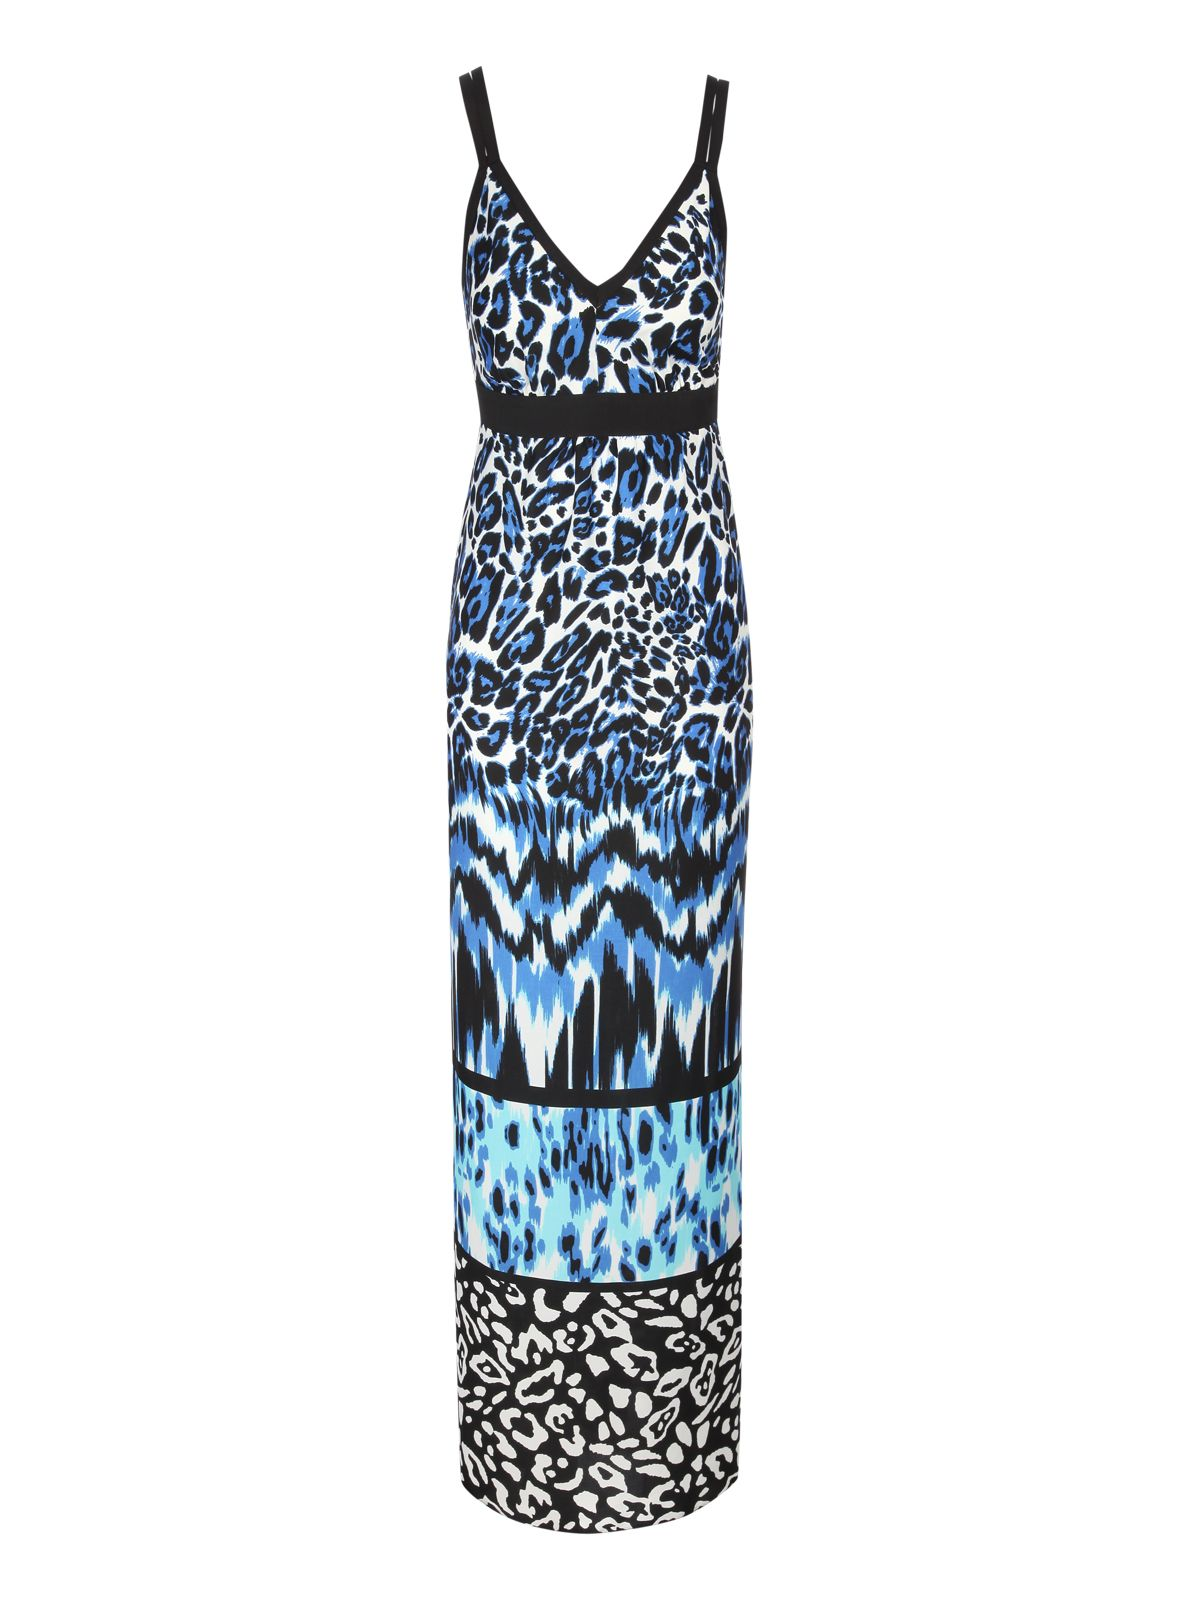 Tiered animal print maxi dress